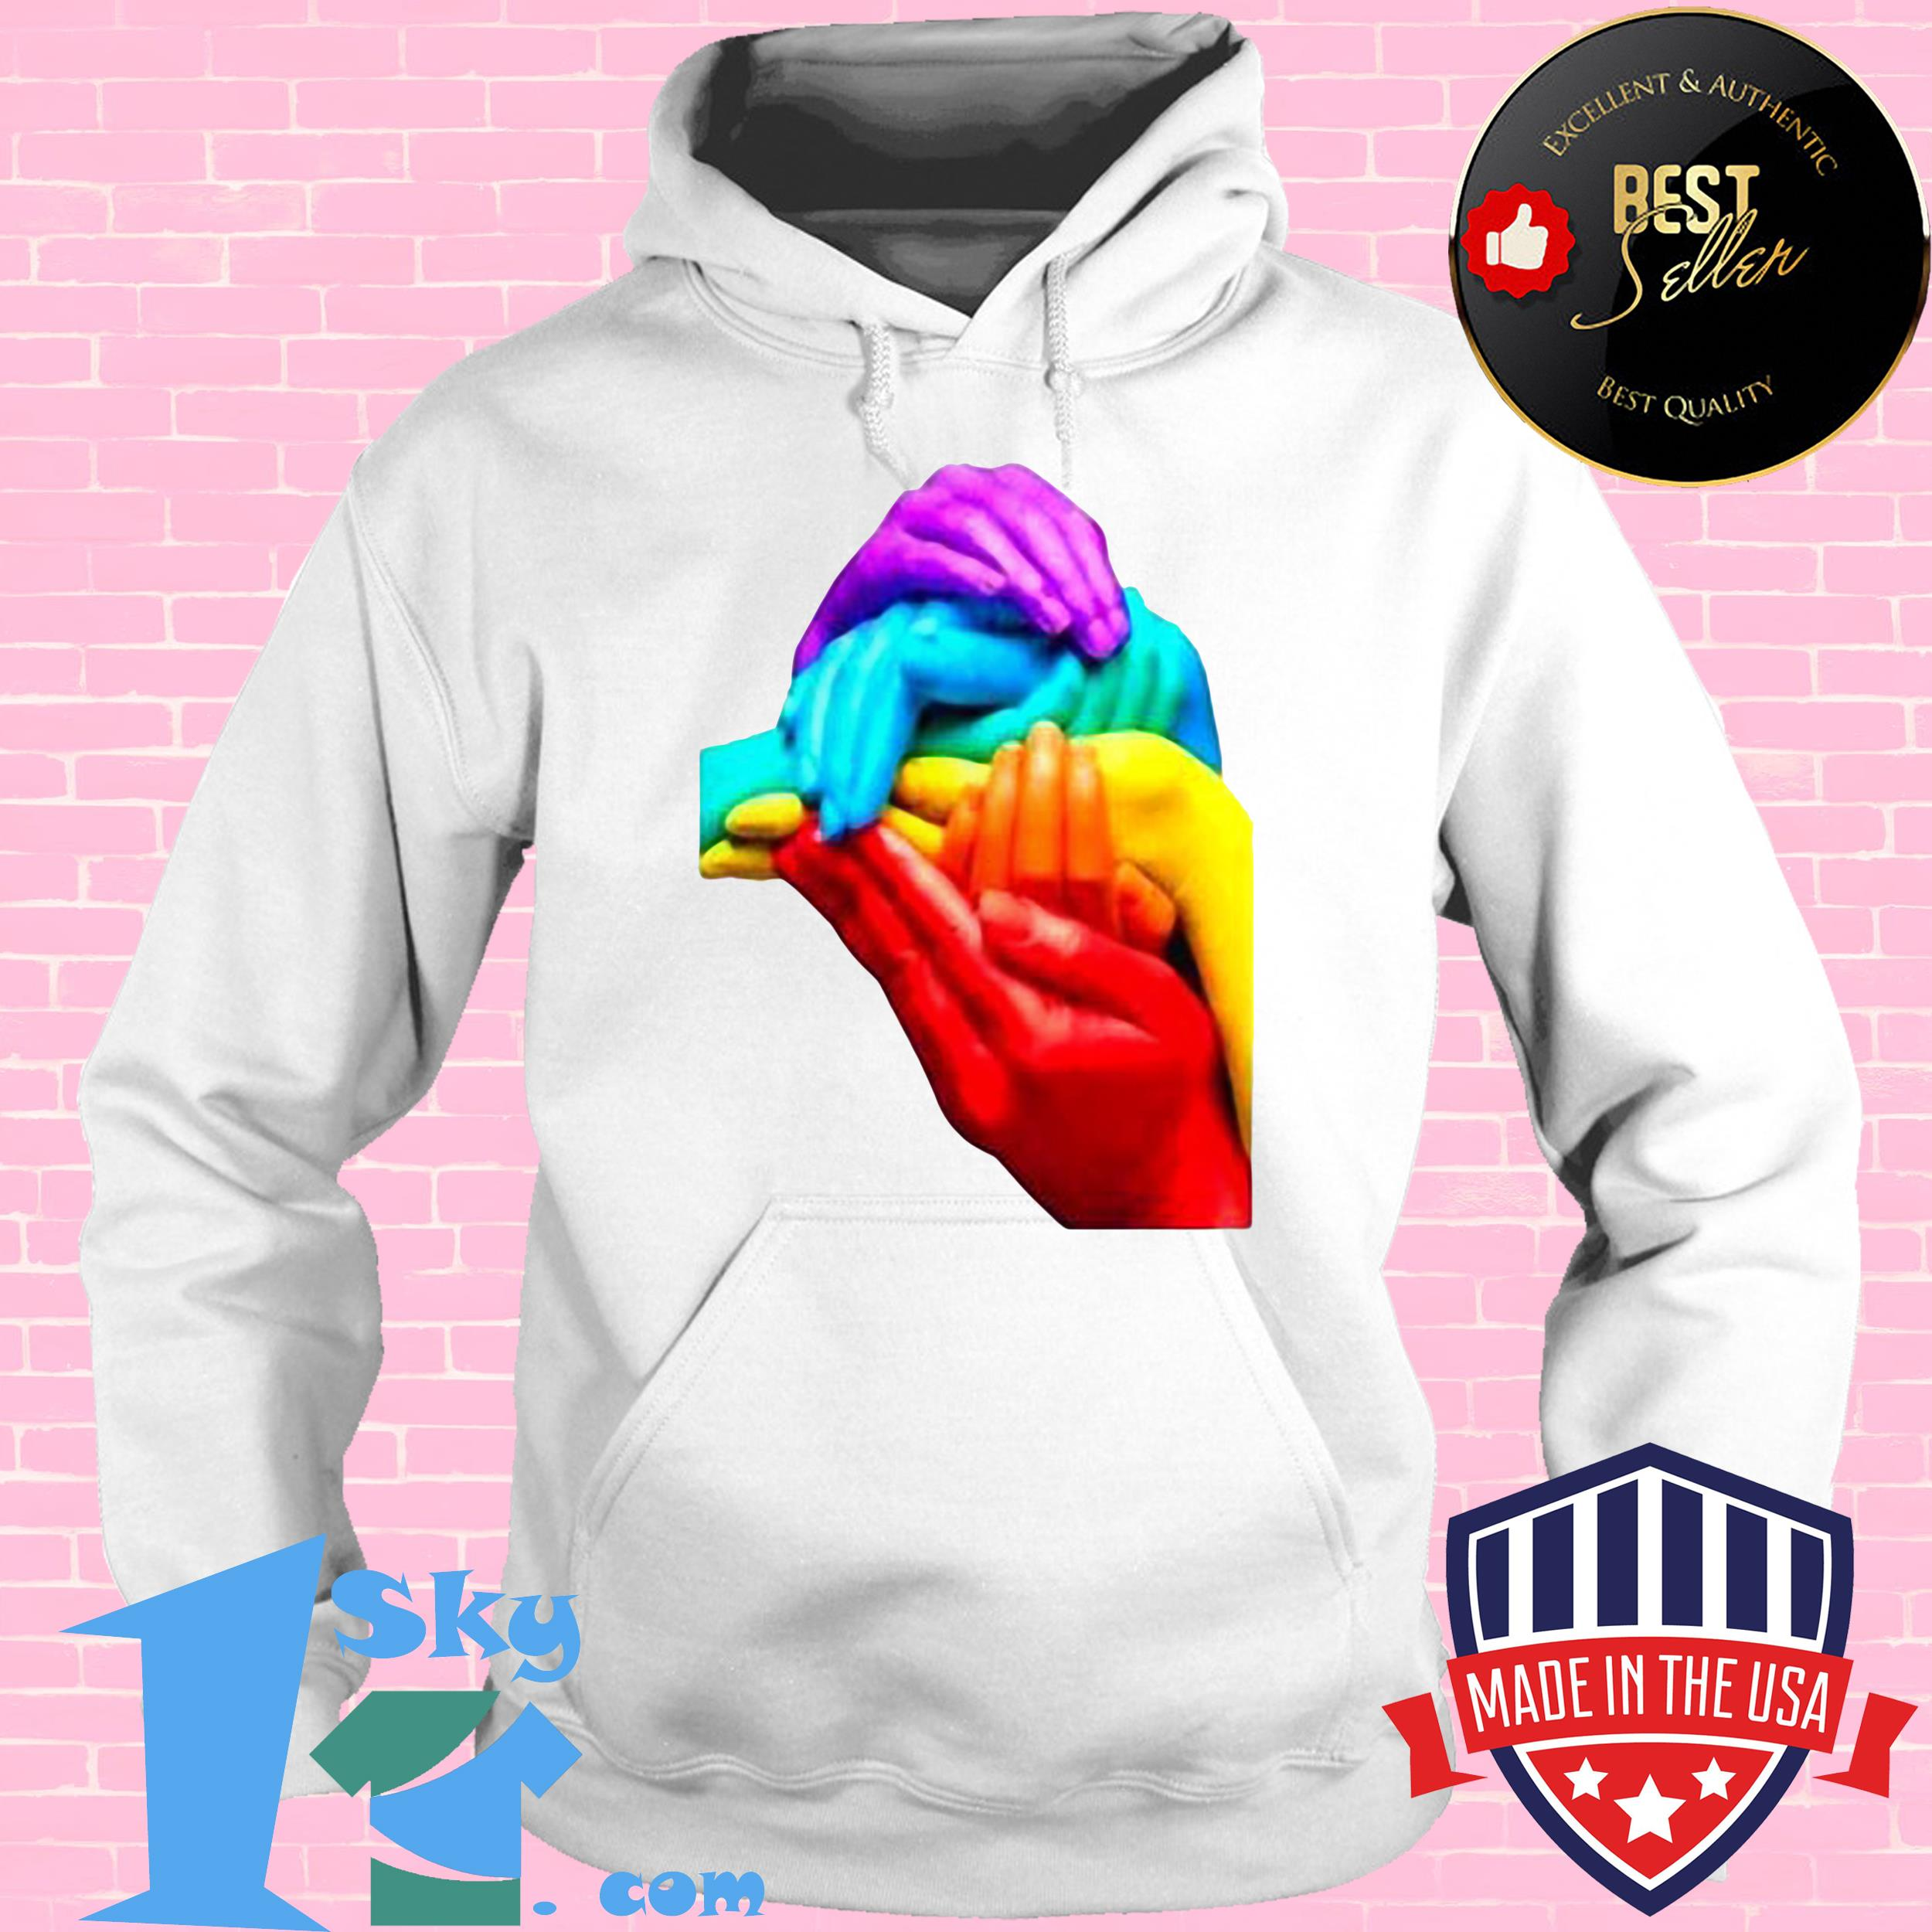 hands colourful gay pride lgbt london soho cool rainbow retro hoodie - Hands Colourful Gay Pride LGBT London Soho Cool Rainbow Retro Shirt